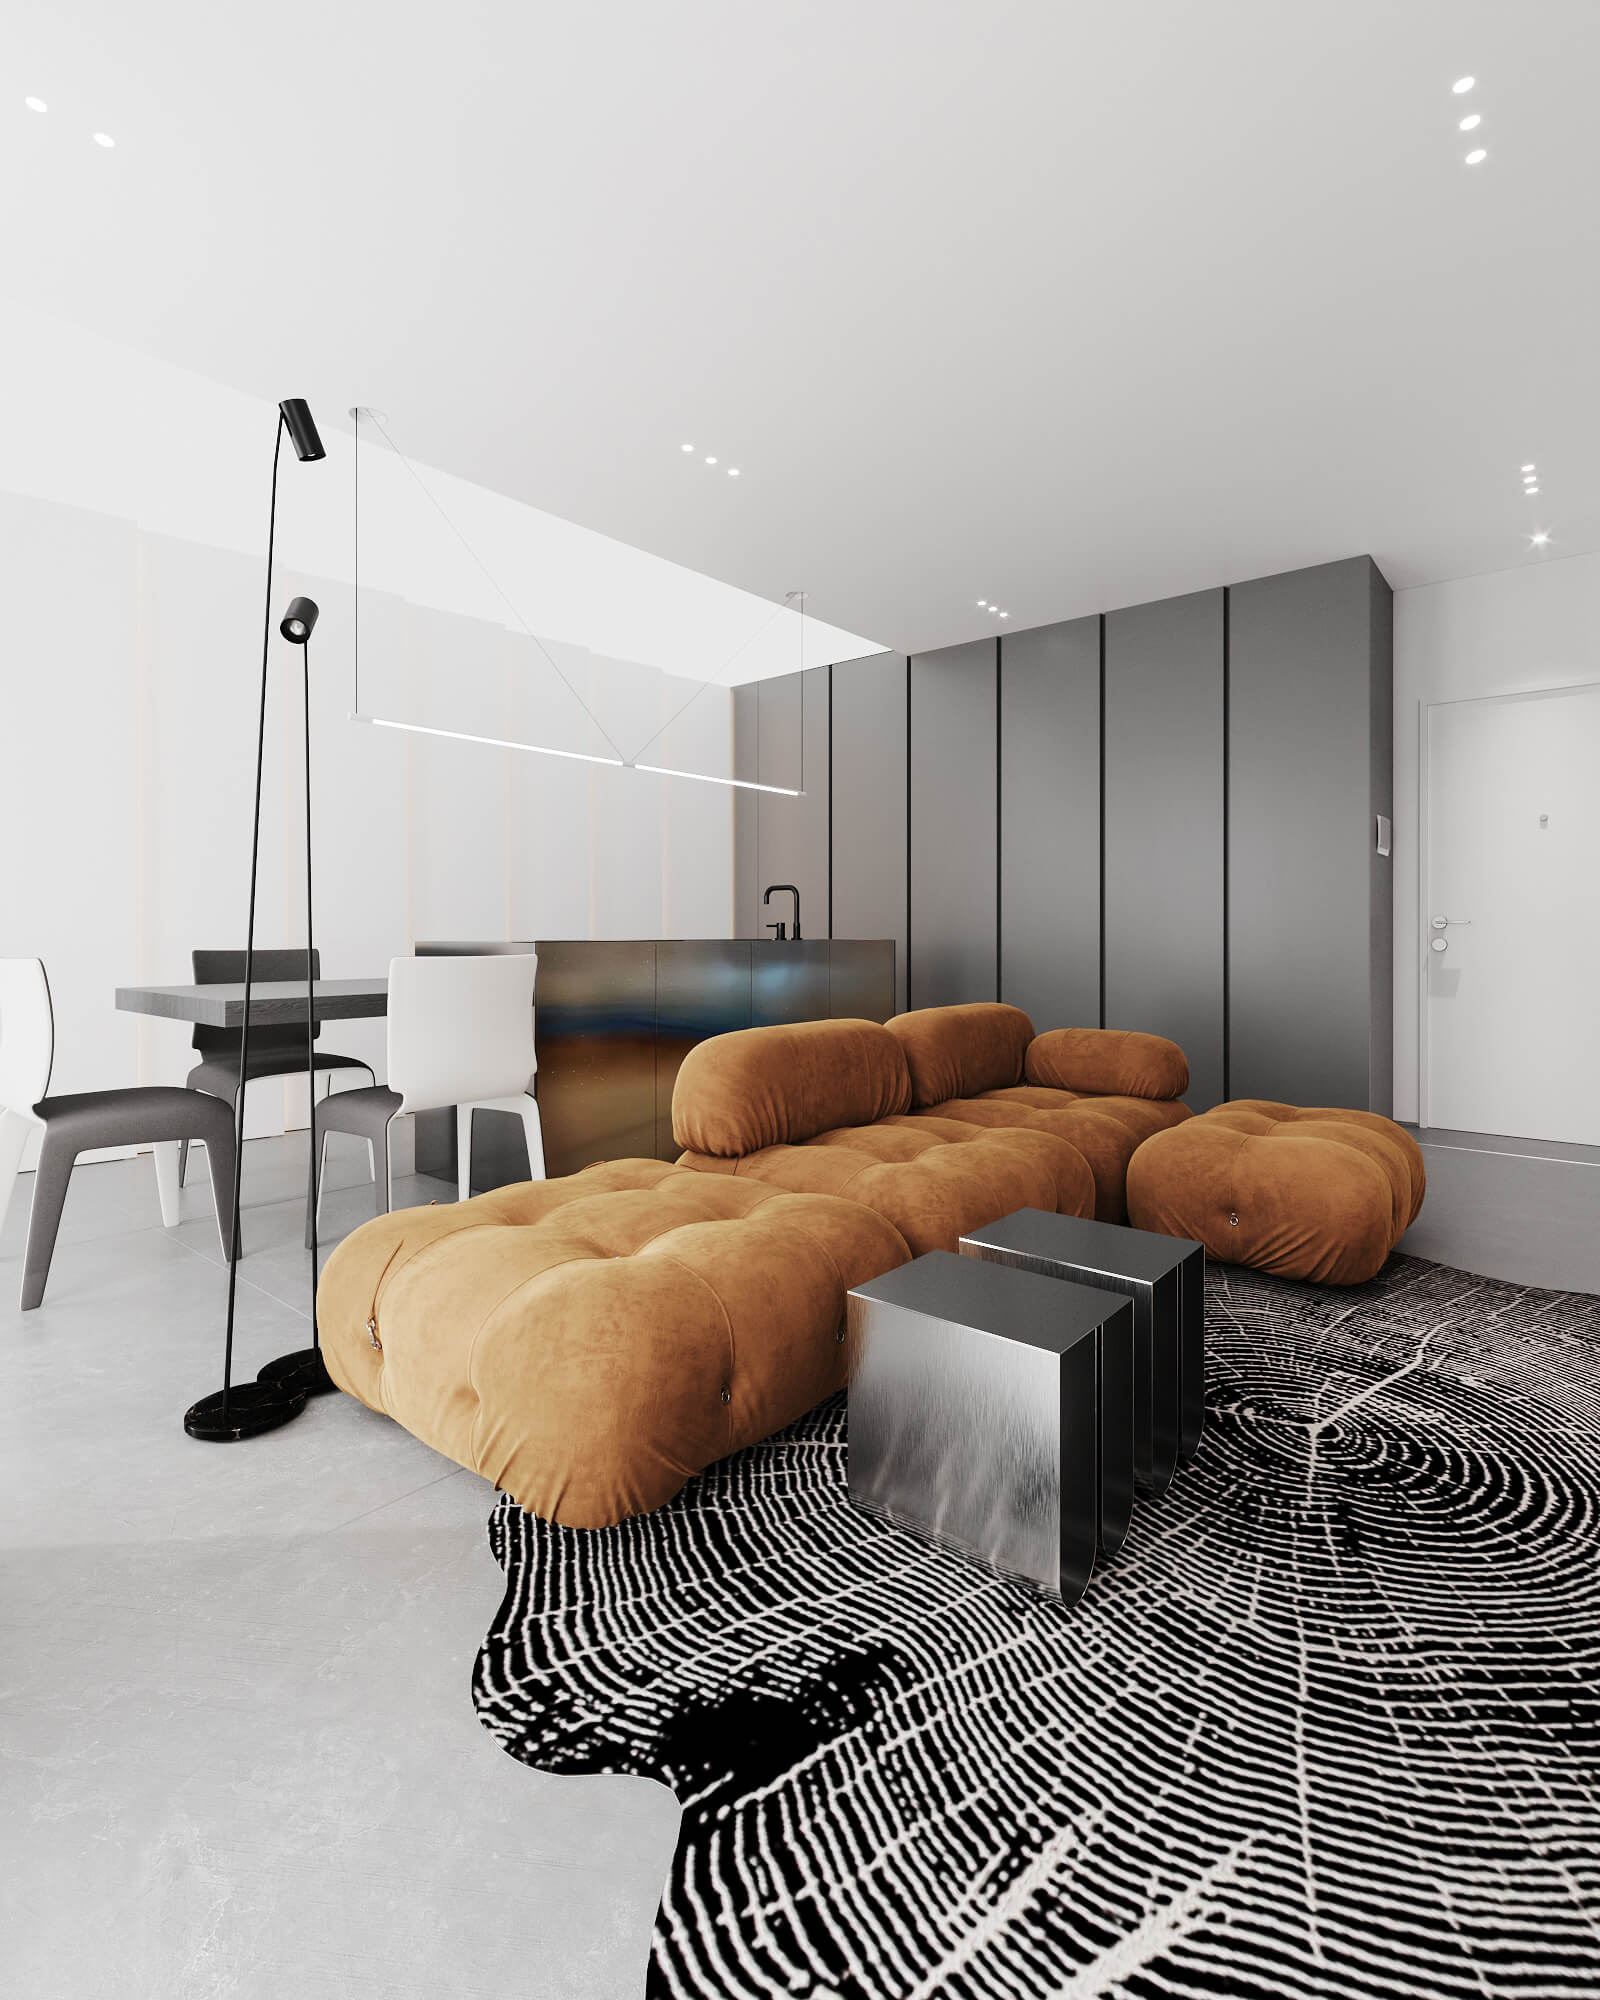 NEEN DESIGN:78² 隐藏在灰白色极简设计的家